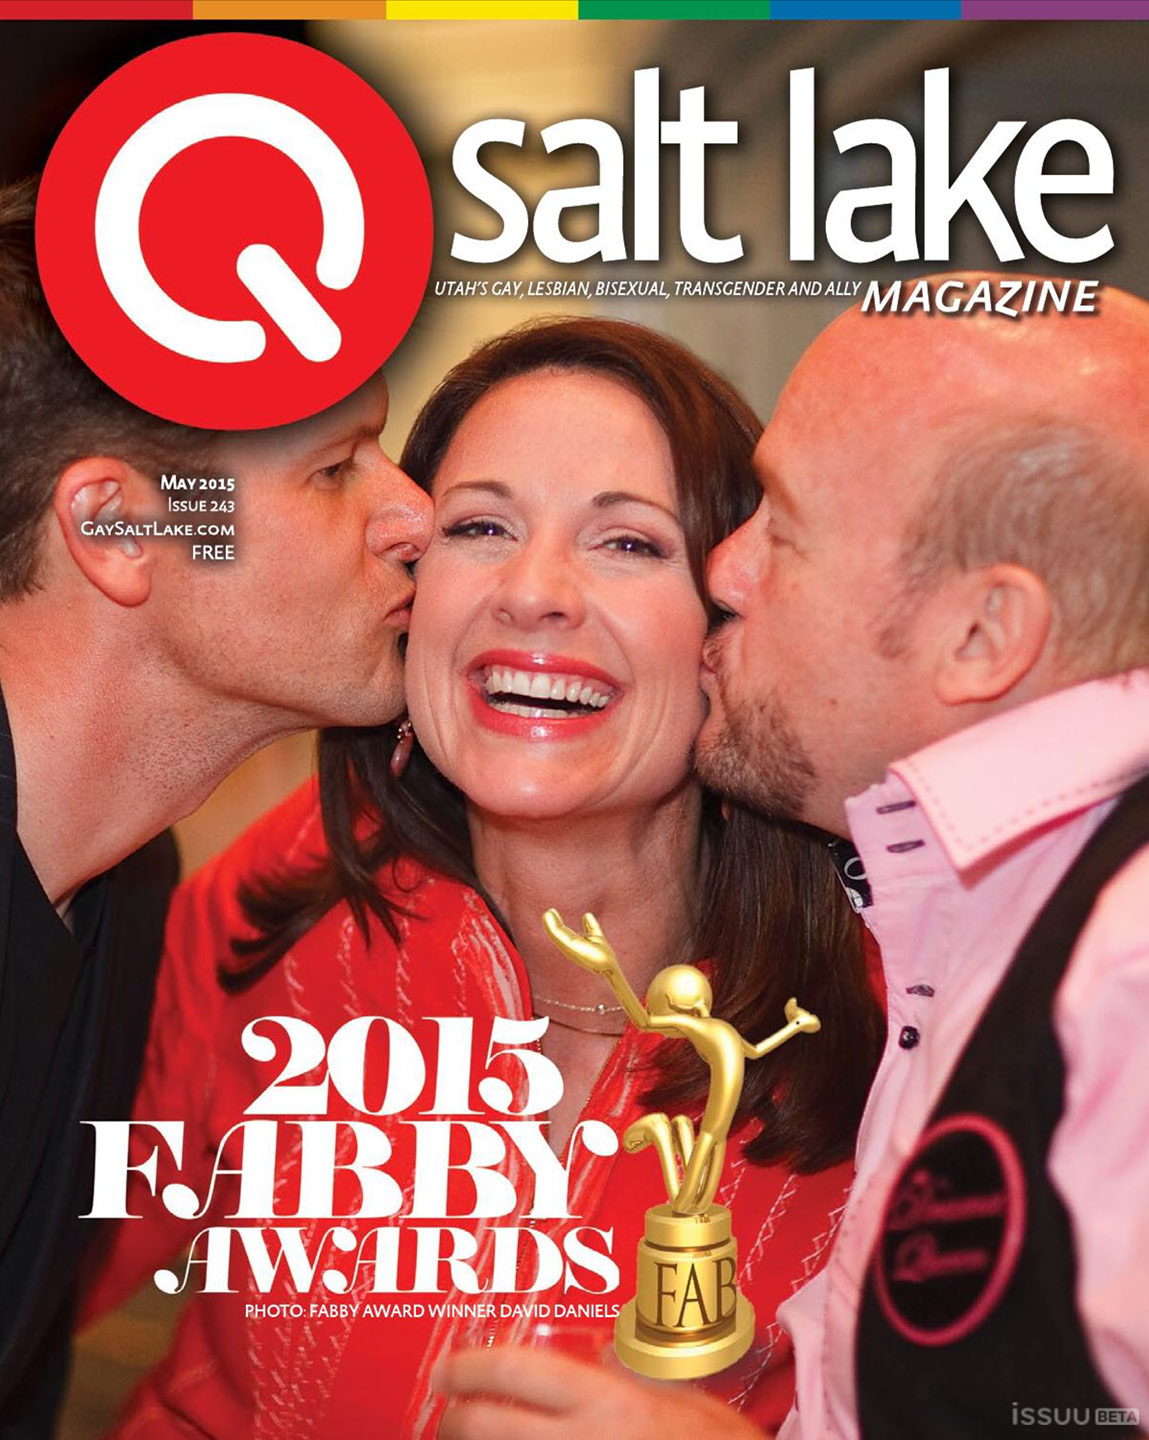 Cover of the QSalt Lake Magazine and photo by dav.d